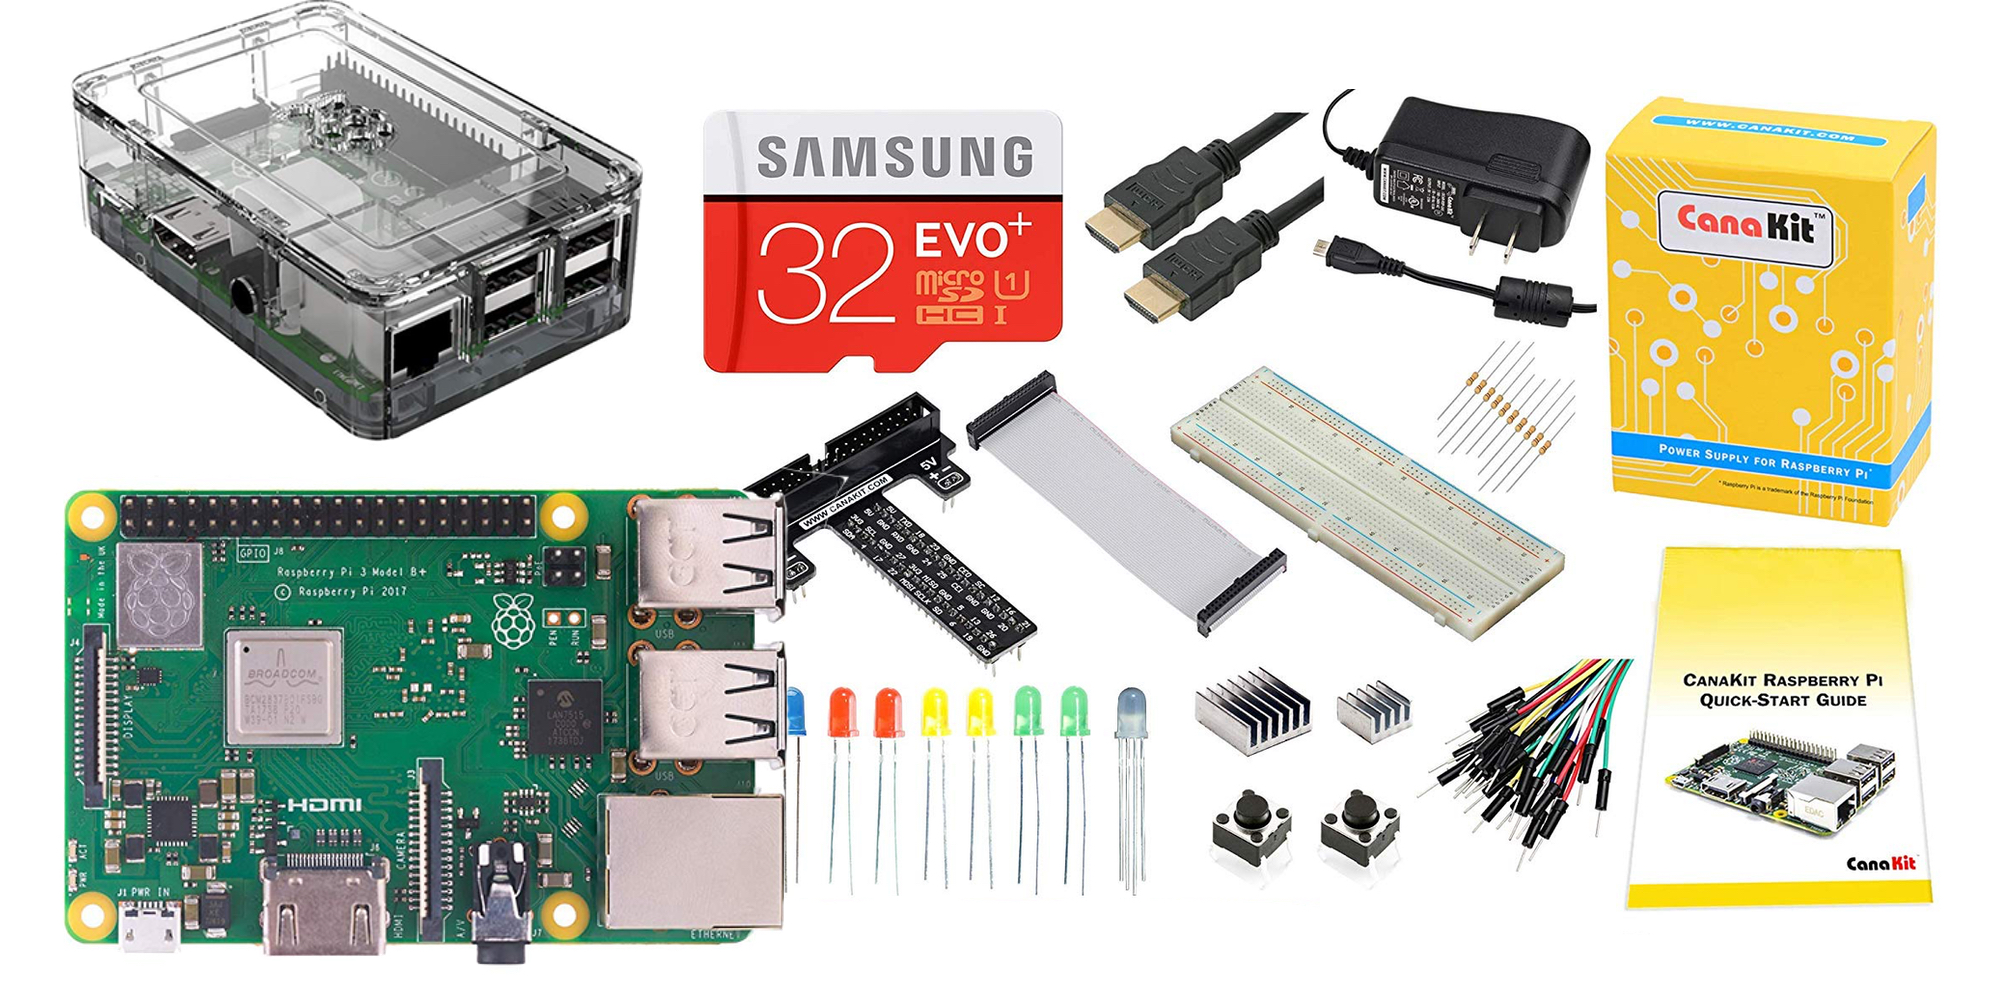 CanaKit's Raspberry Pi 3 B+ Ultimate Starter Kit can be yours for $70 Prime shipped (Reg. $90)